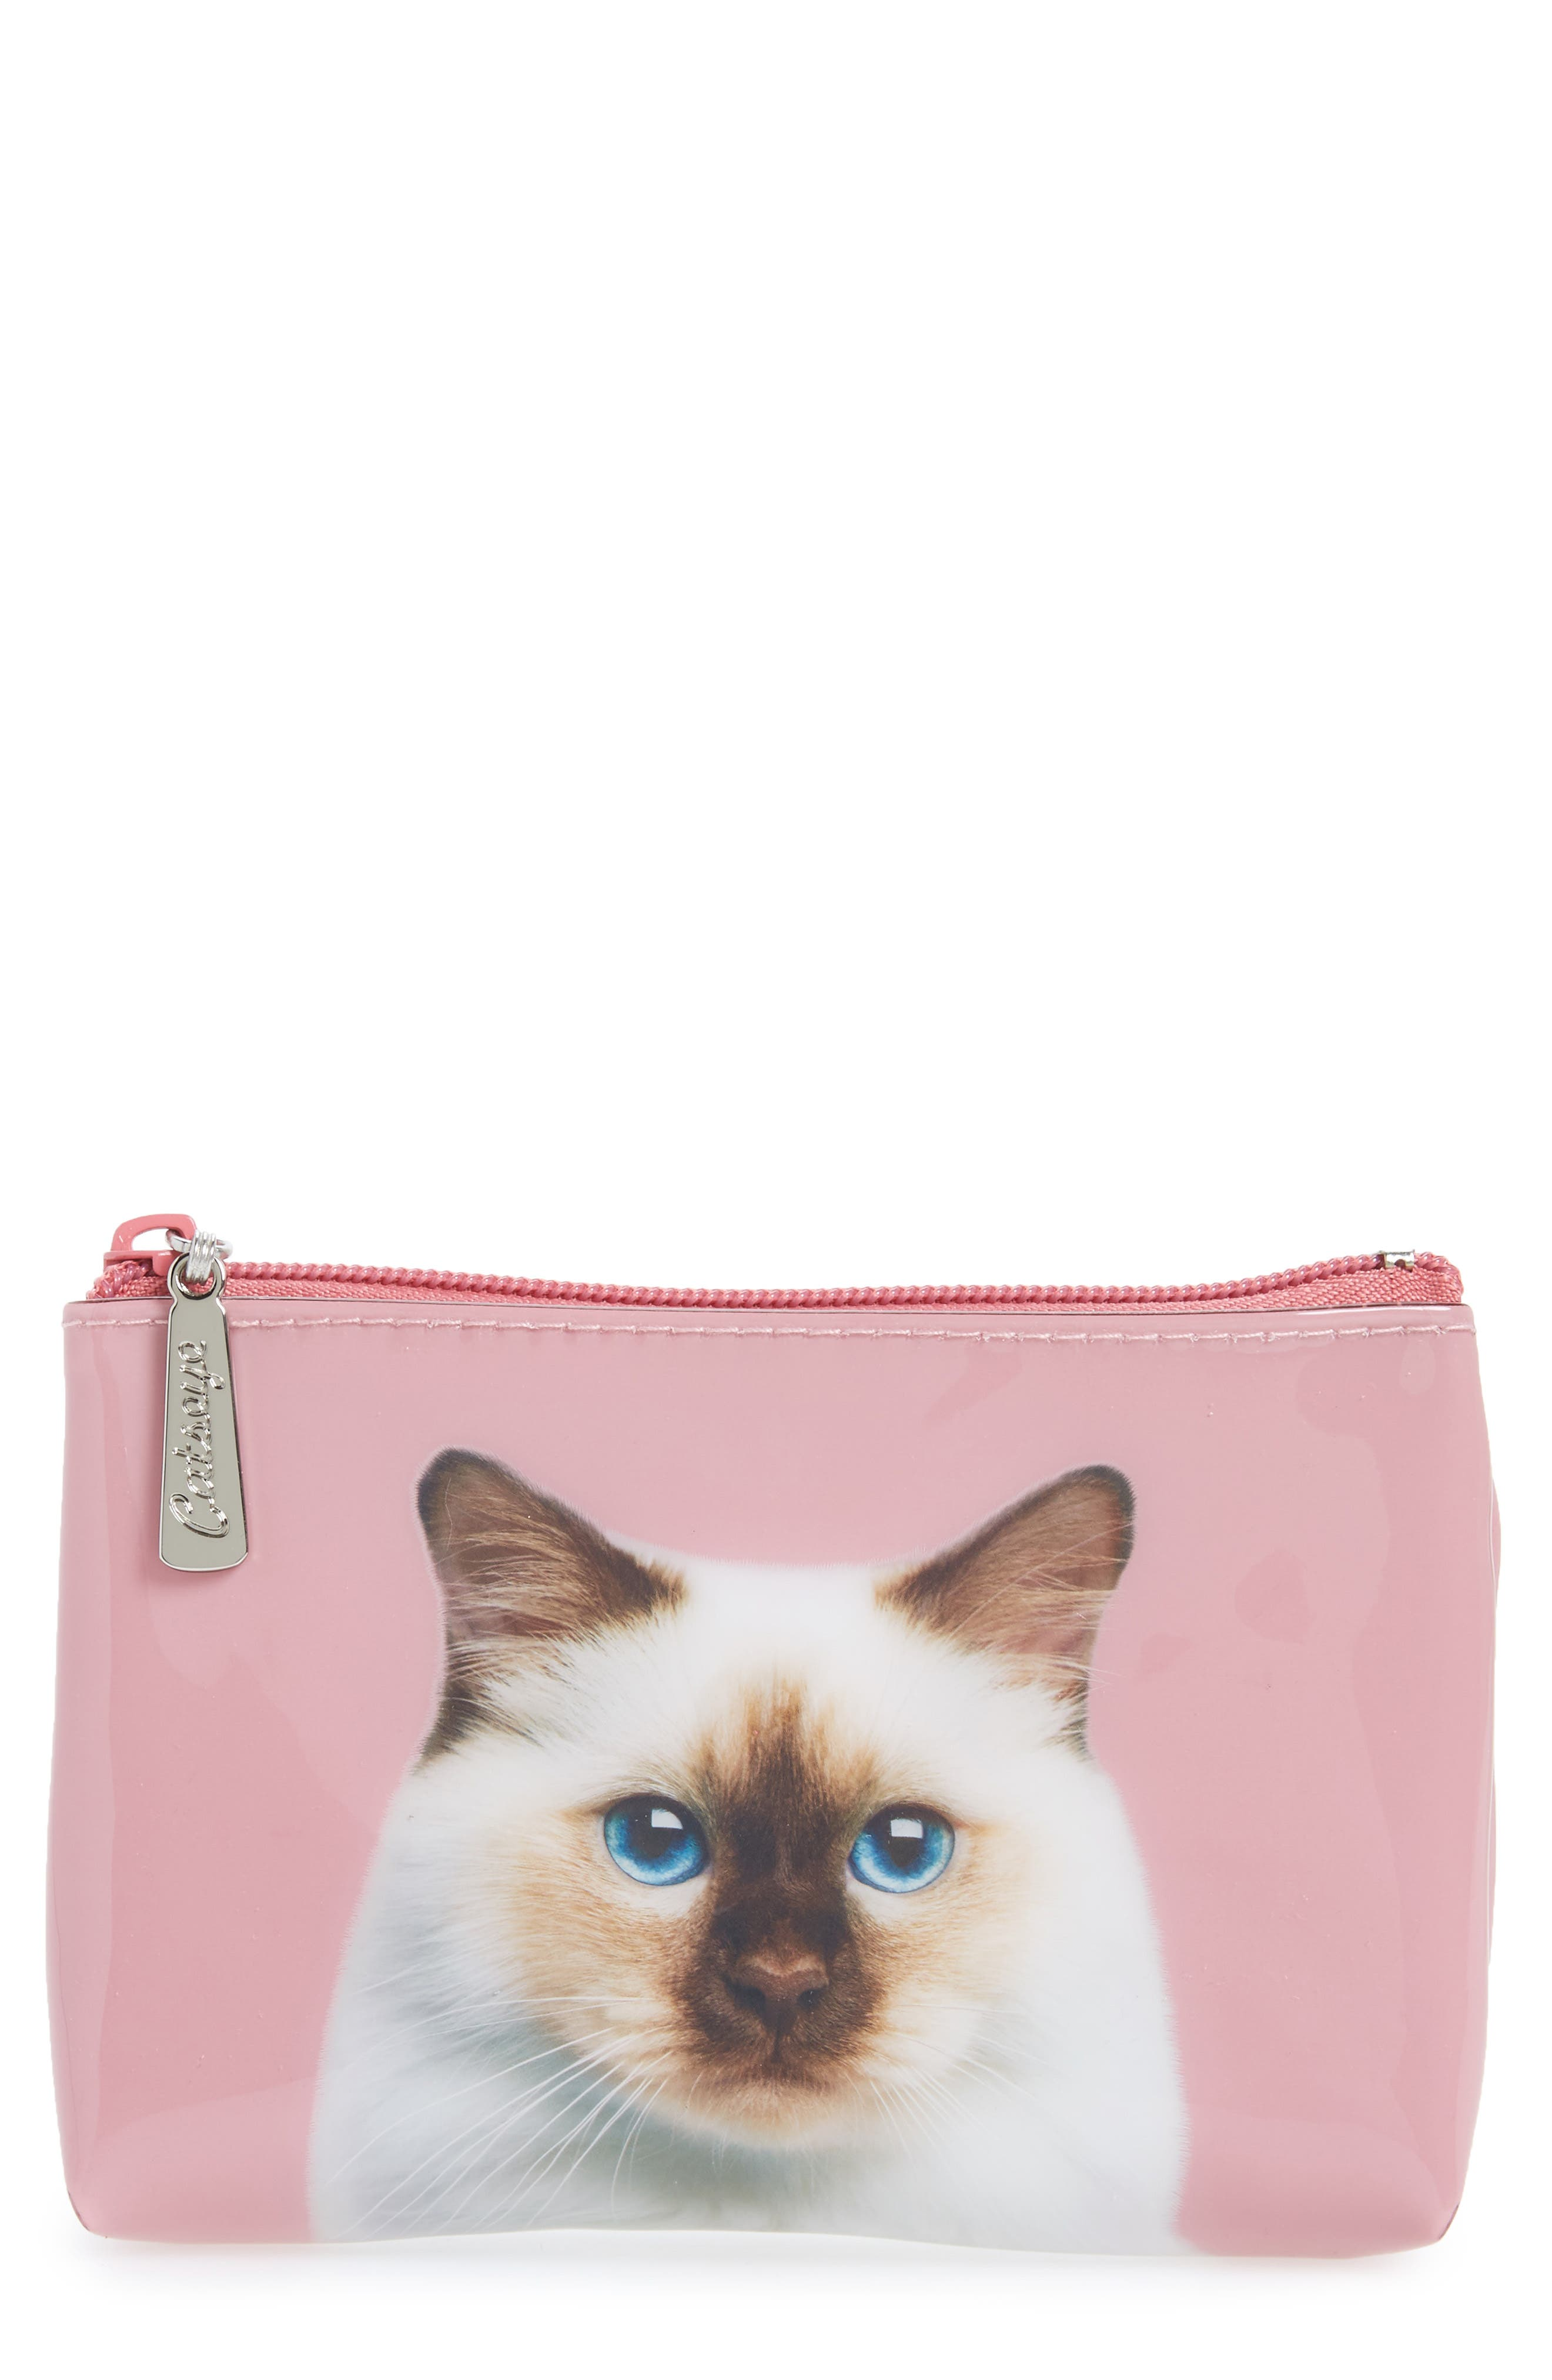 Catseye London Zip Pouch (Nordstrom Exclusive)